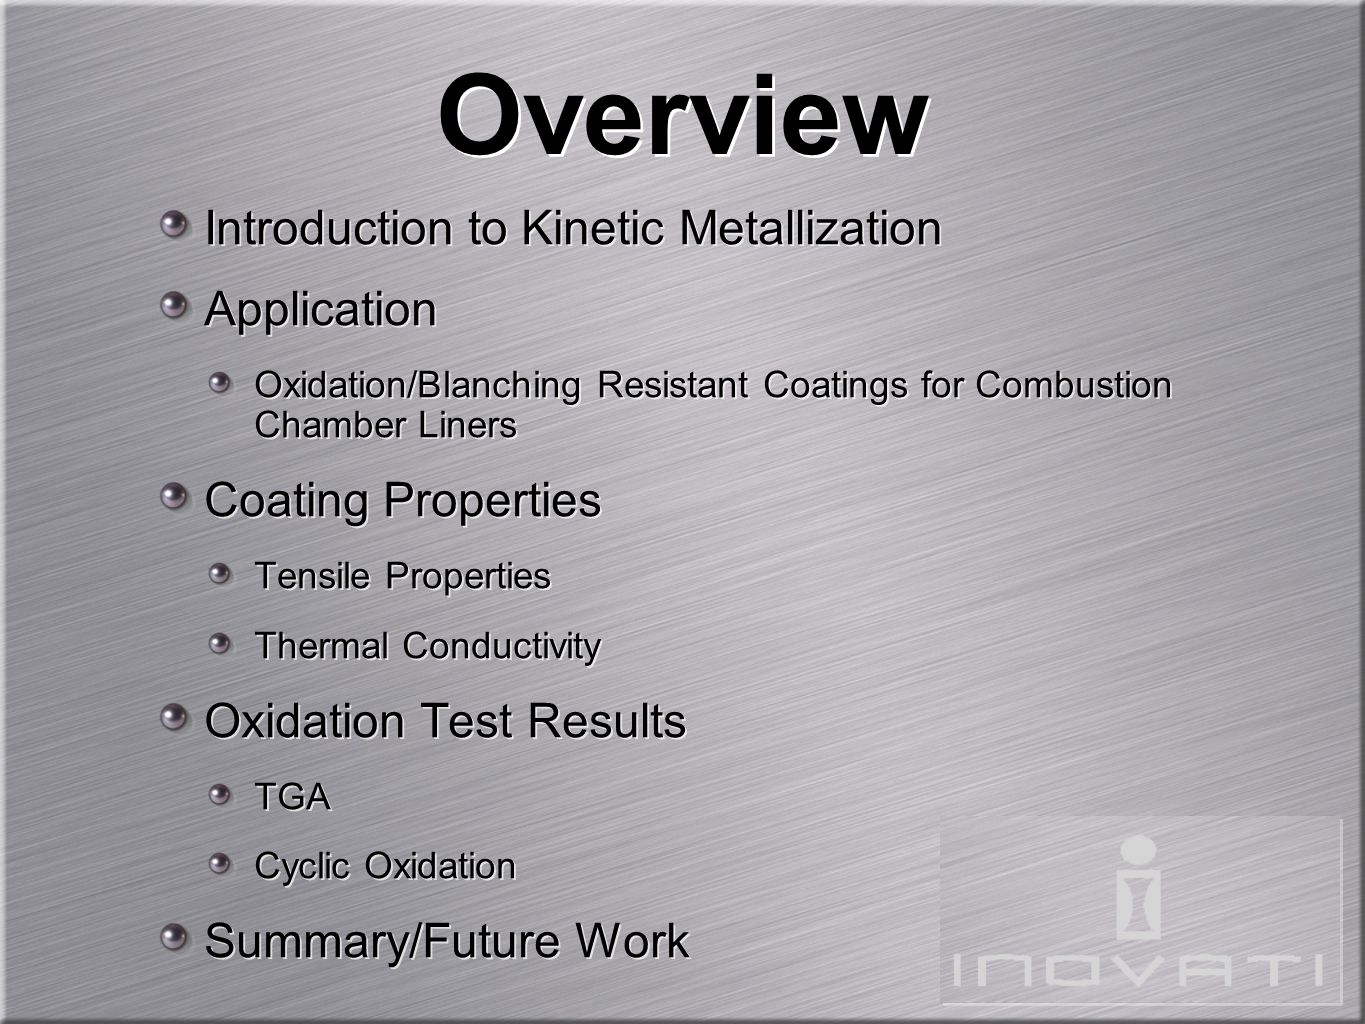 Introduction to Kinetic Metallization Application Oxidation/Blanching Resistant Coatings for Combustion Chamber Liners Coating Properties Tensile Properties Thermal Conductivity Oxidation Test Results TGA Cyclic Oxidation Summary/Future Work Introduction to Kinetic Metallization Application Oxidation/Blanching Resistant Coatings for Combustion Chamber Liners Coating Properties Tensile Properties Thermal Conductivity Oxidation Test Results TGA Cyclic Oxidation Summary/Future Work Overview